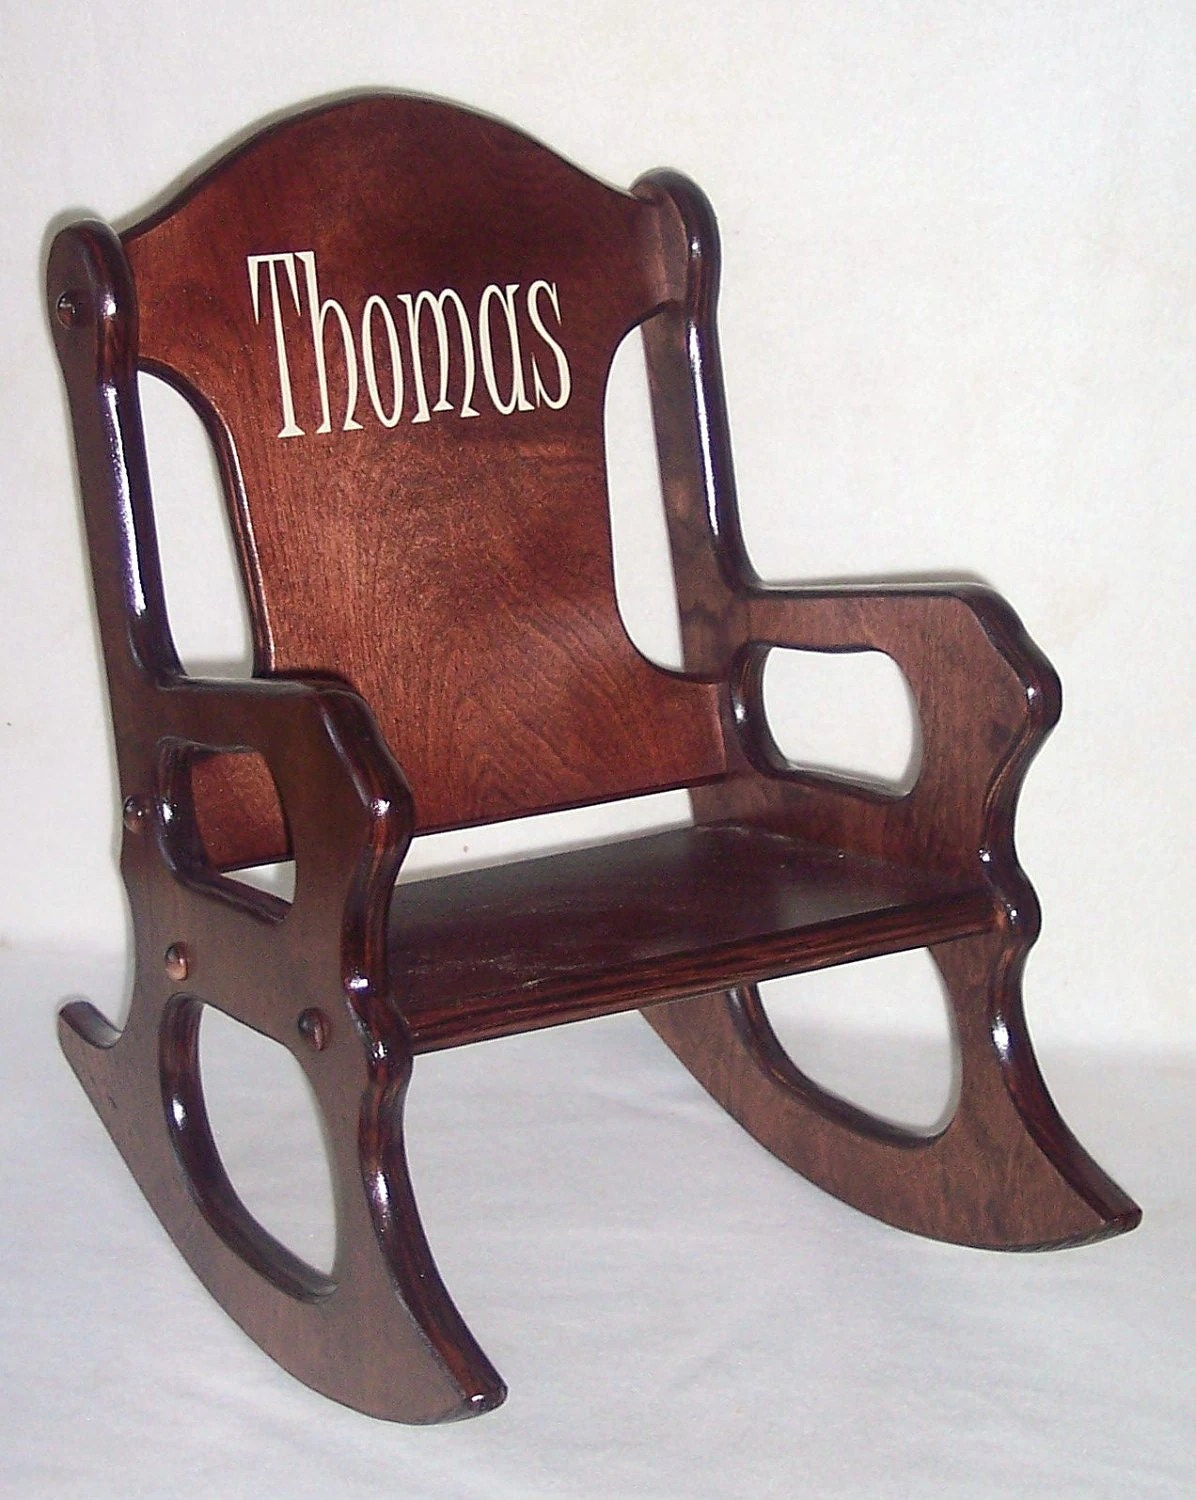 personalized little kid chair dining chairs at walmart wooden kids rocking cherry finish